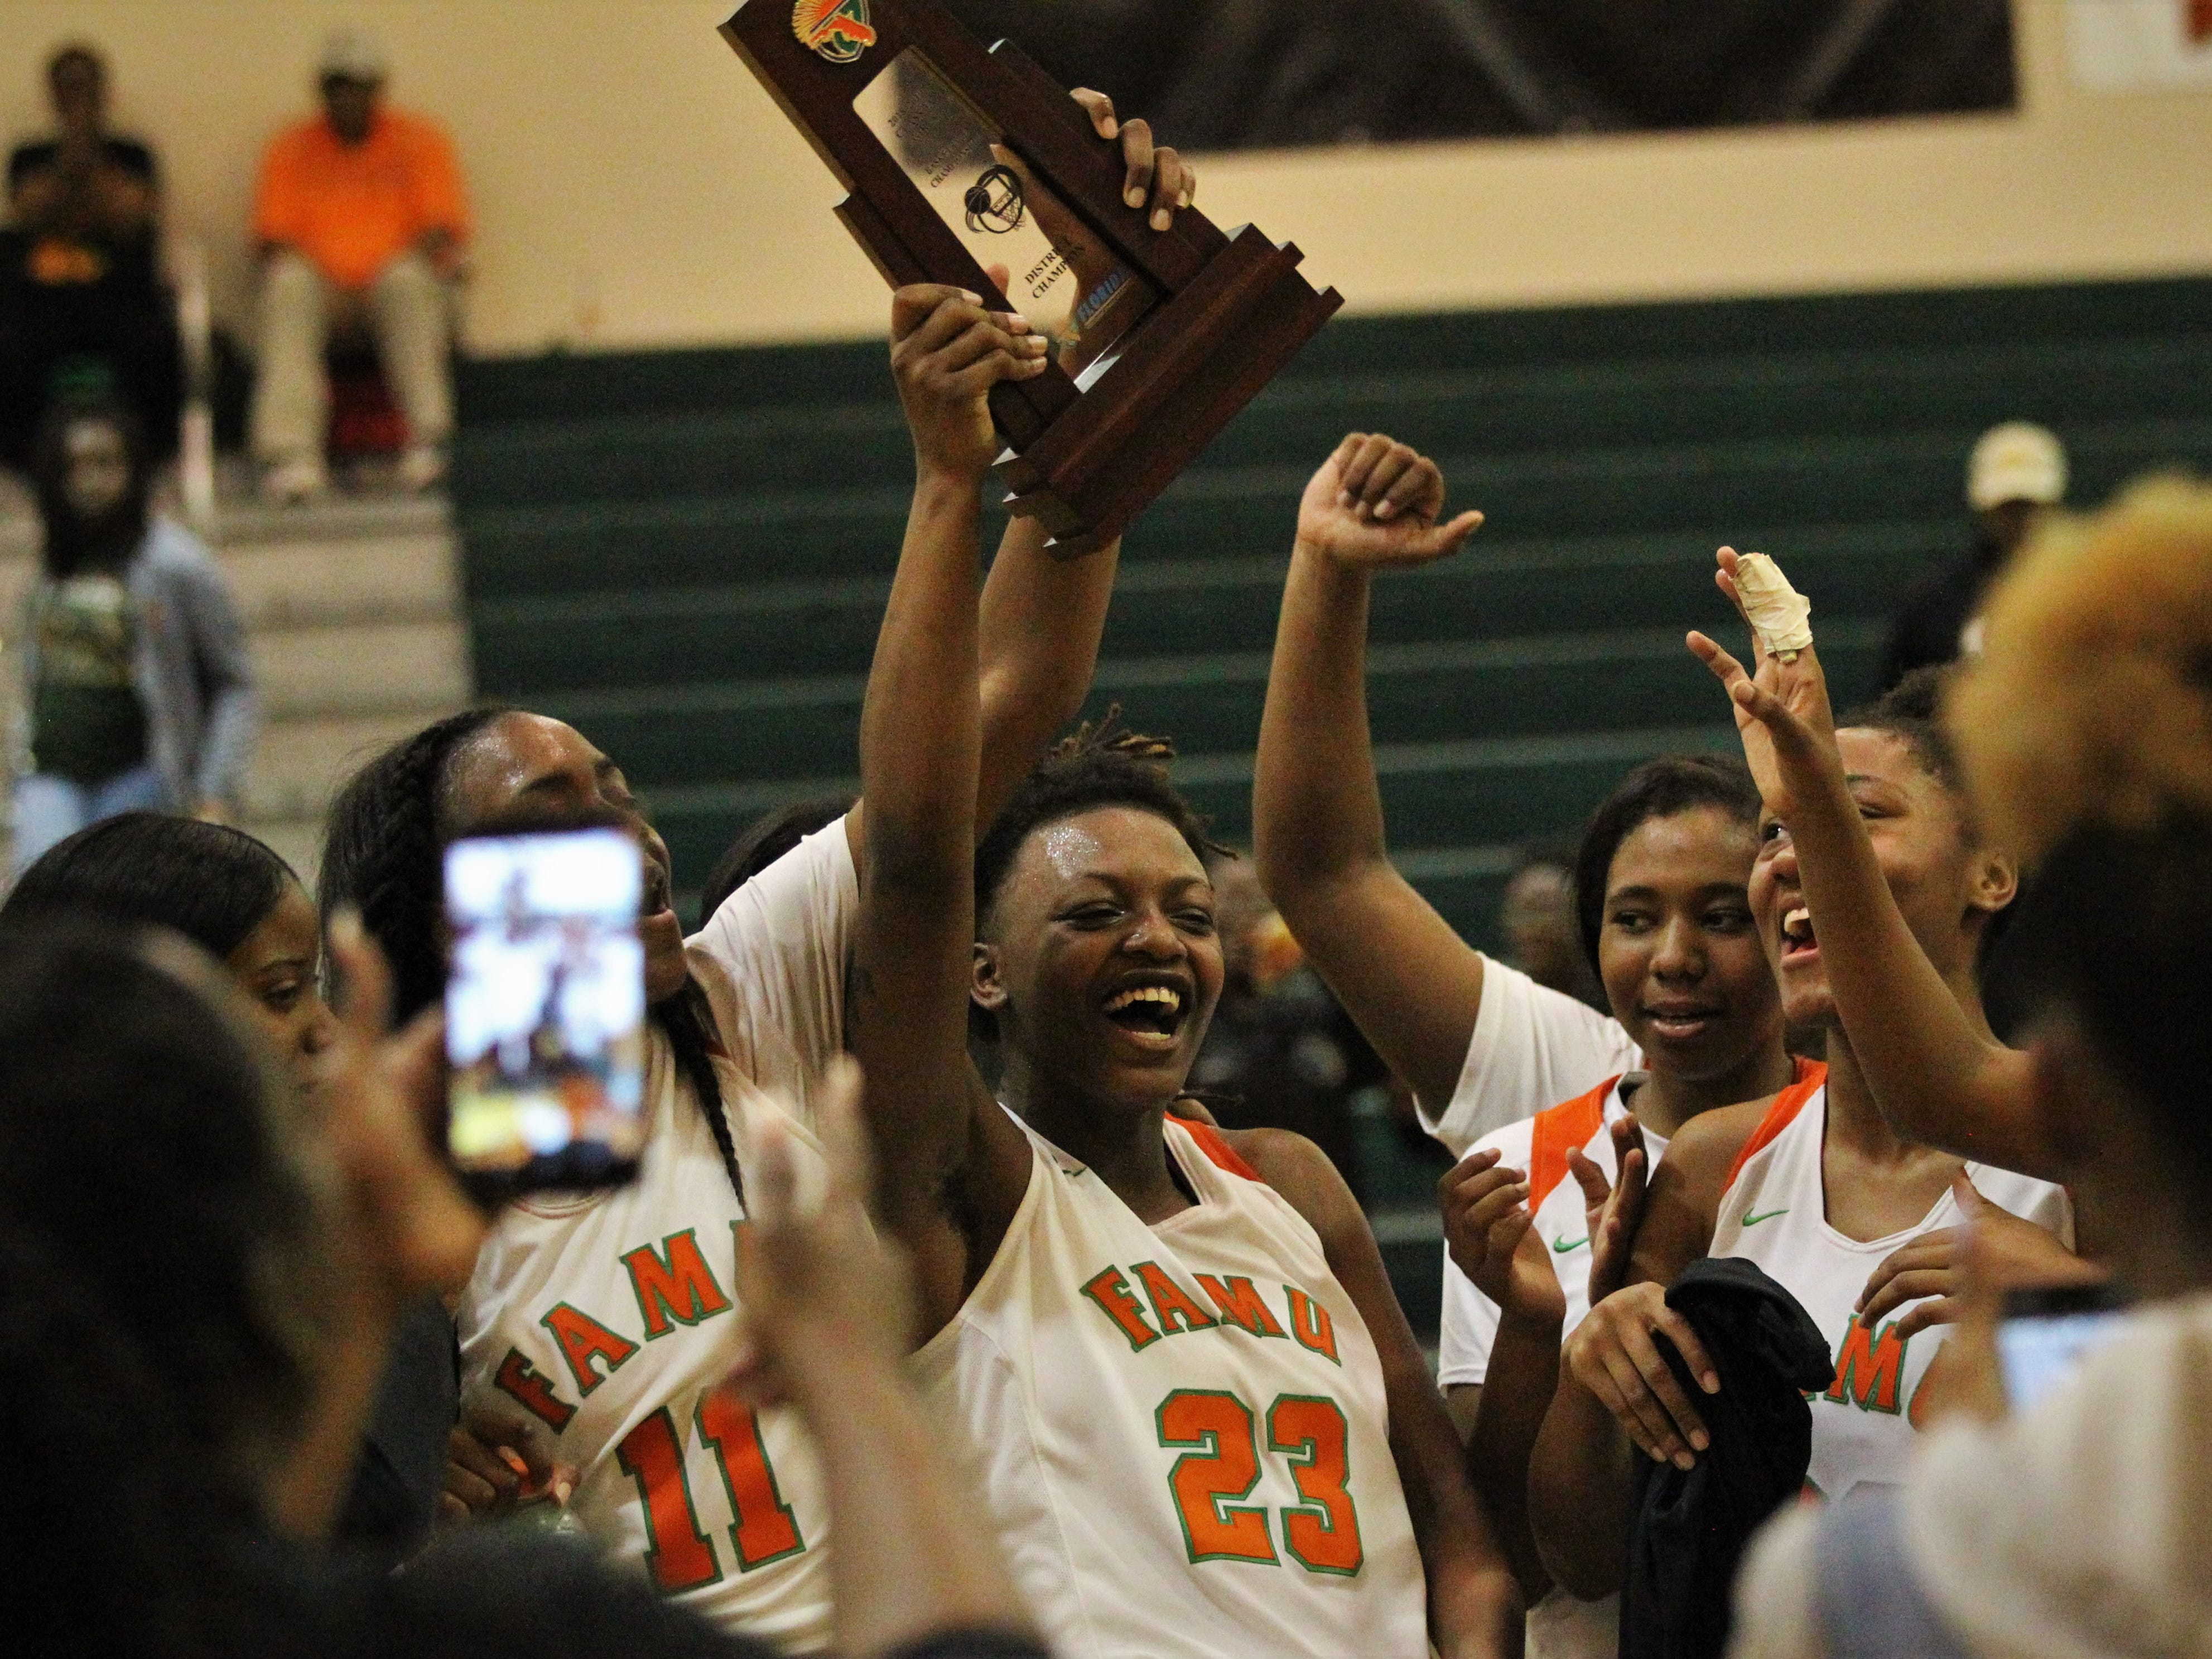 FAMU DRS senior Ayleshia Vickers (23) celebrates the Rattlers' District 1-3A championship after beating NFC 59-41 on Jan. 7, 2019.